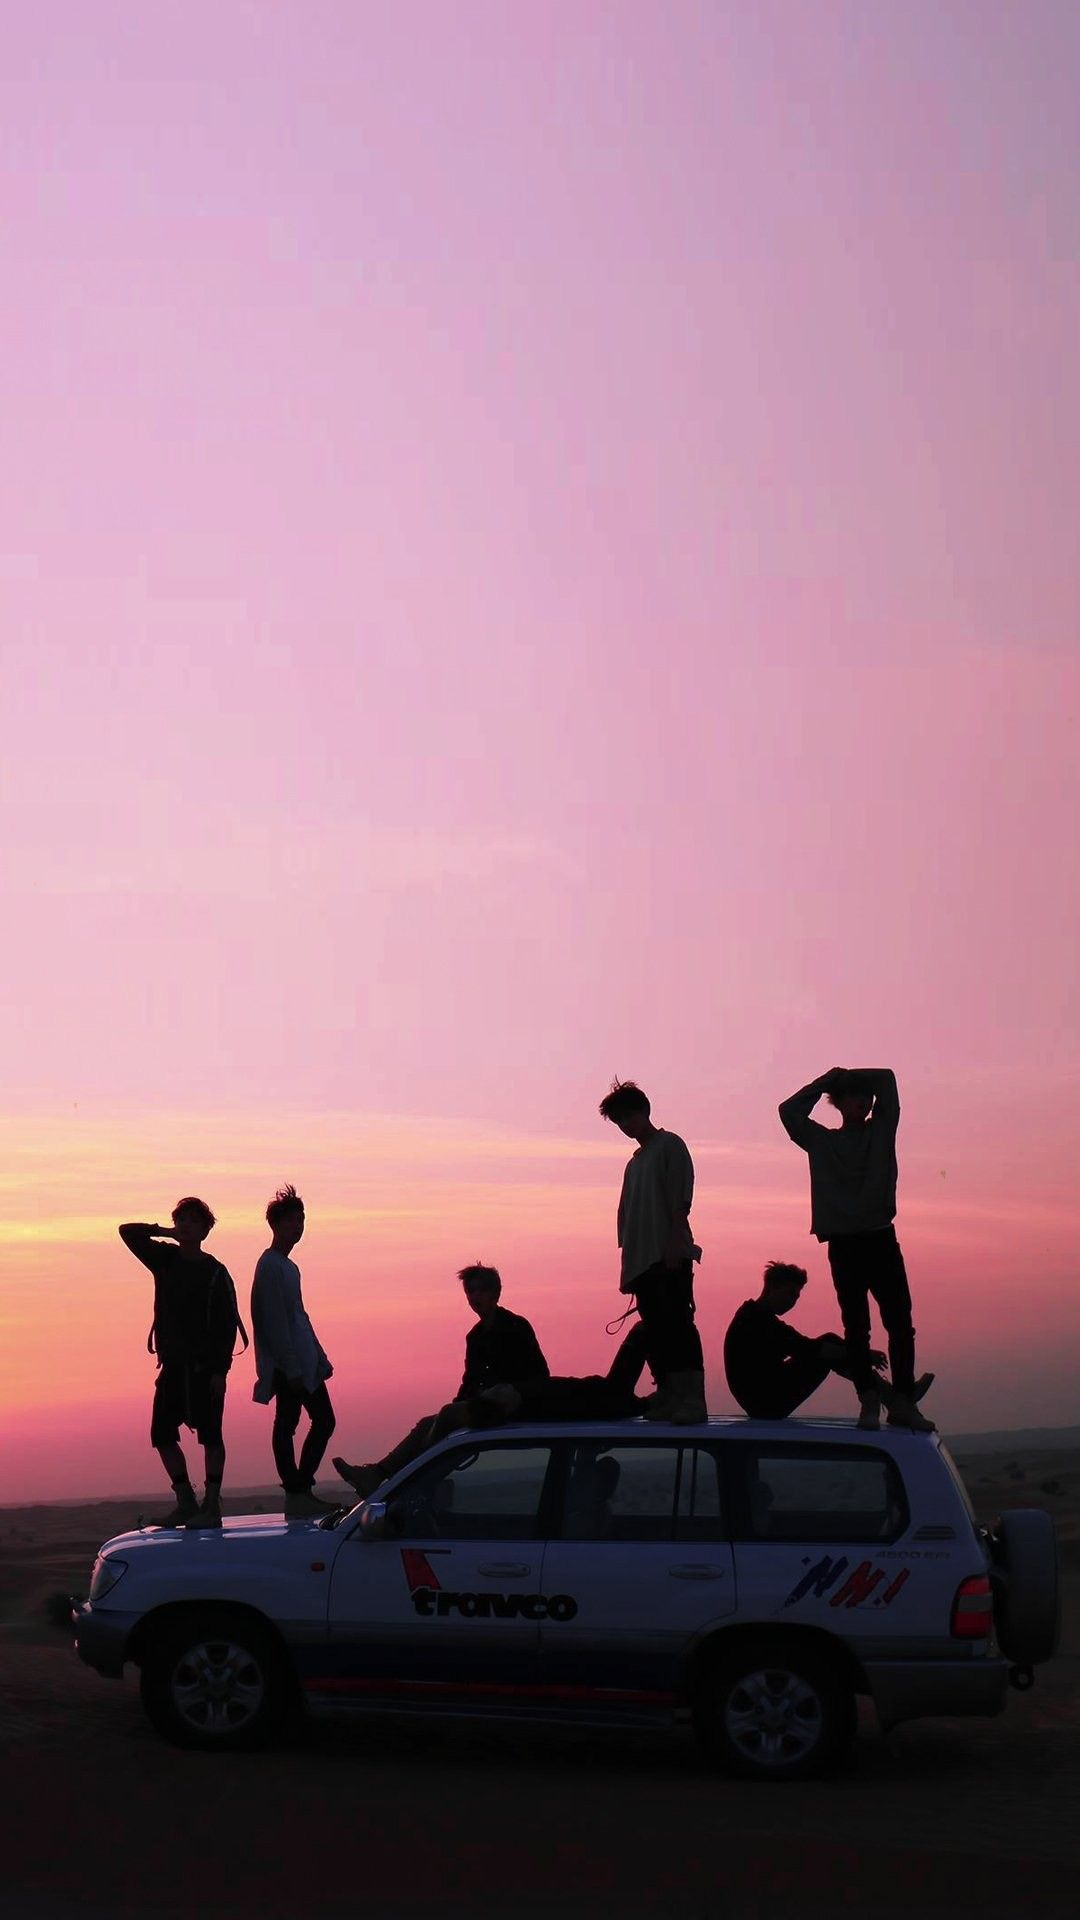 BTS Aesthetic Wallpapers Top Free BTS Aesthetic